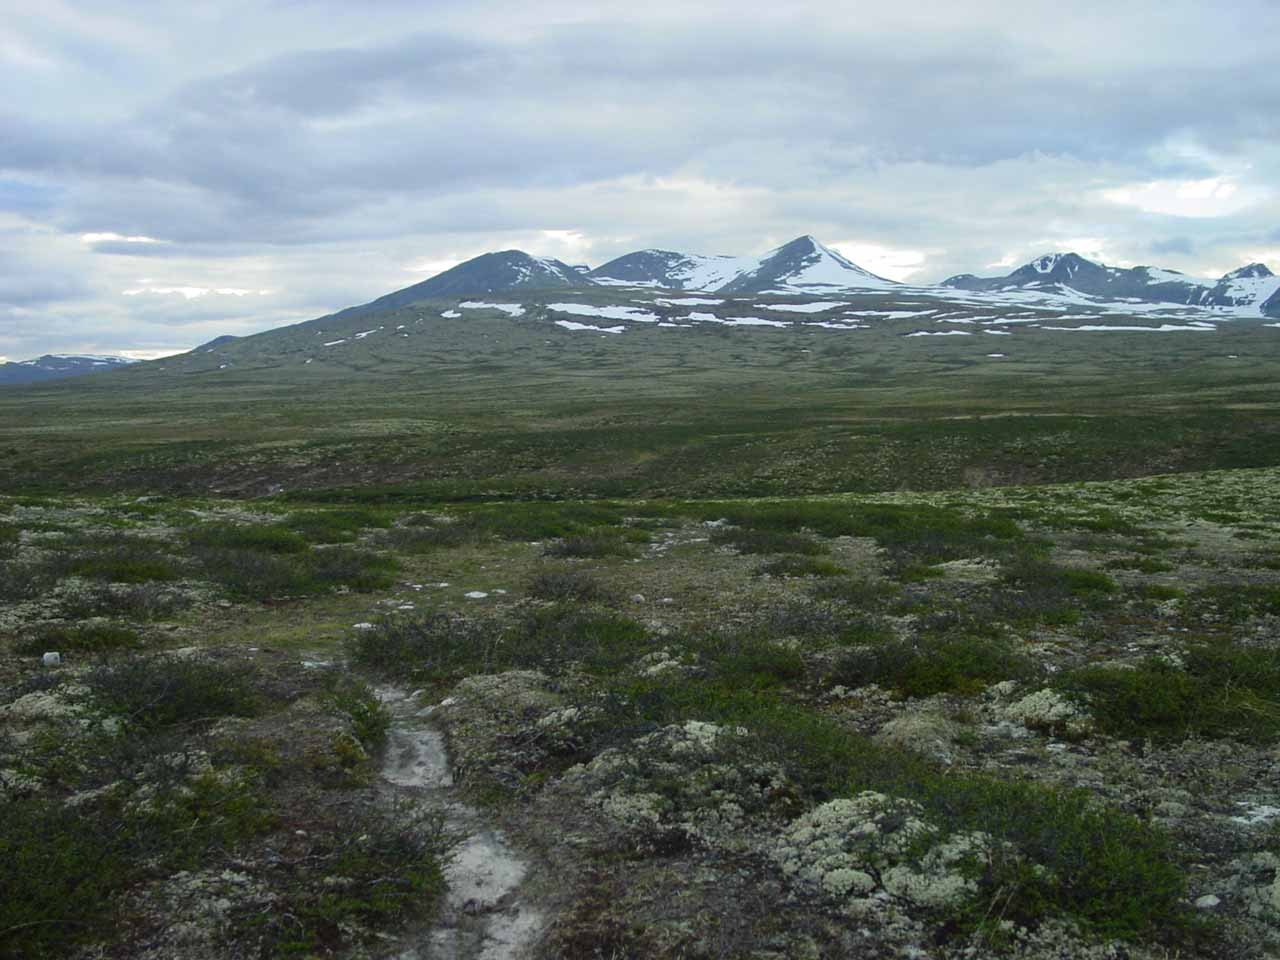 This was the wide open tundra of Rondane National Park that I was faced with while trying to figure out where I was supposed to walk to get to Storulfossen